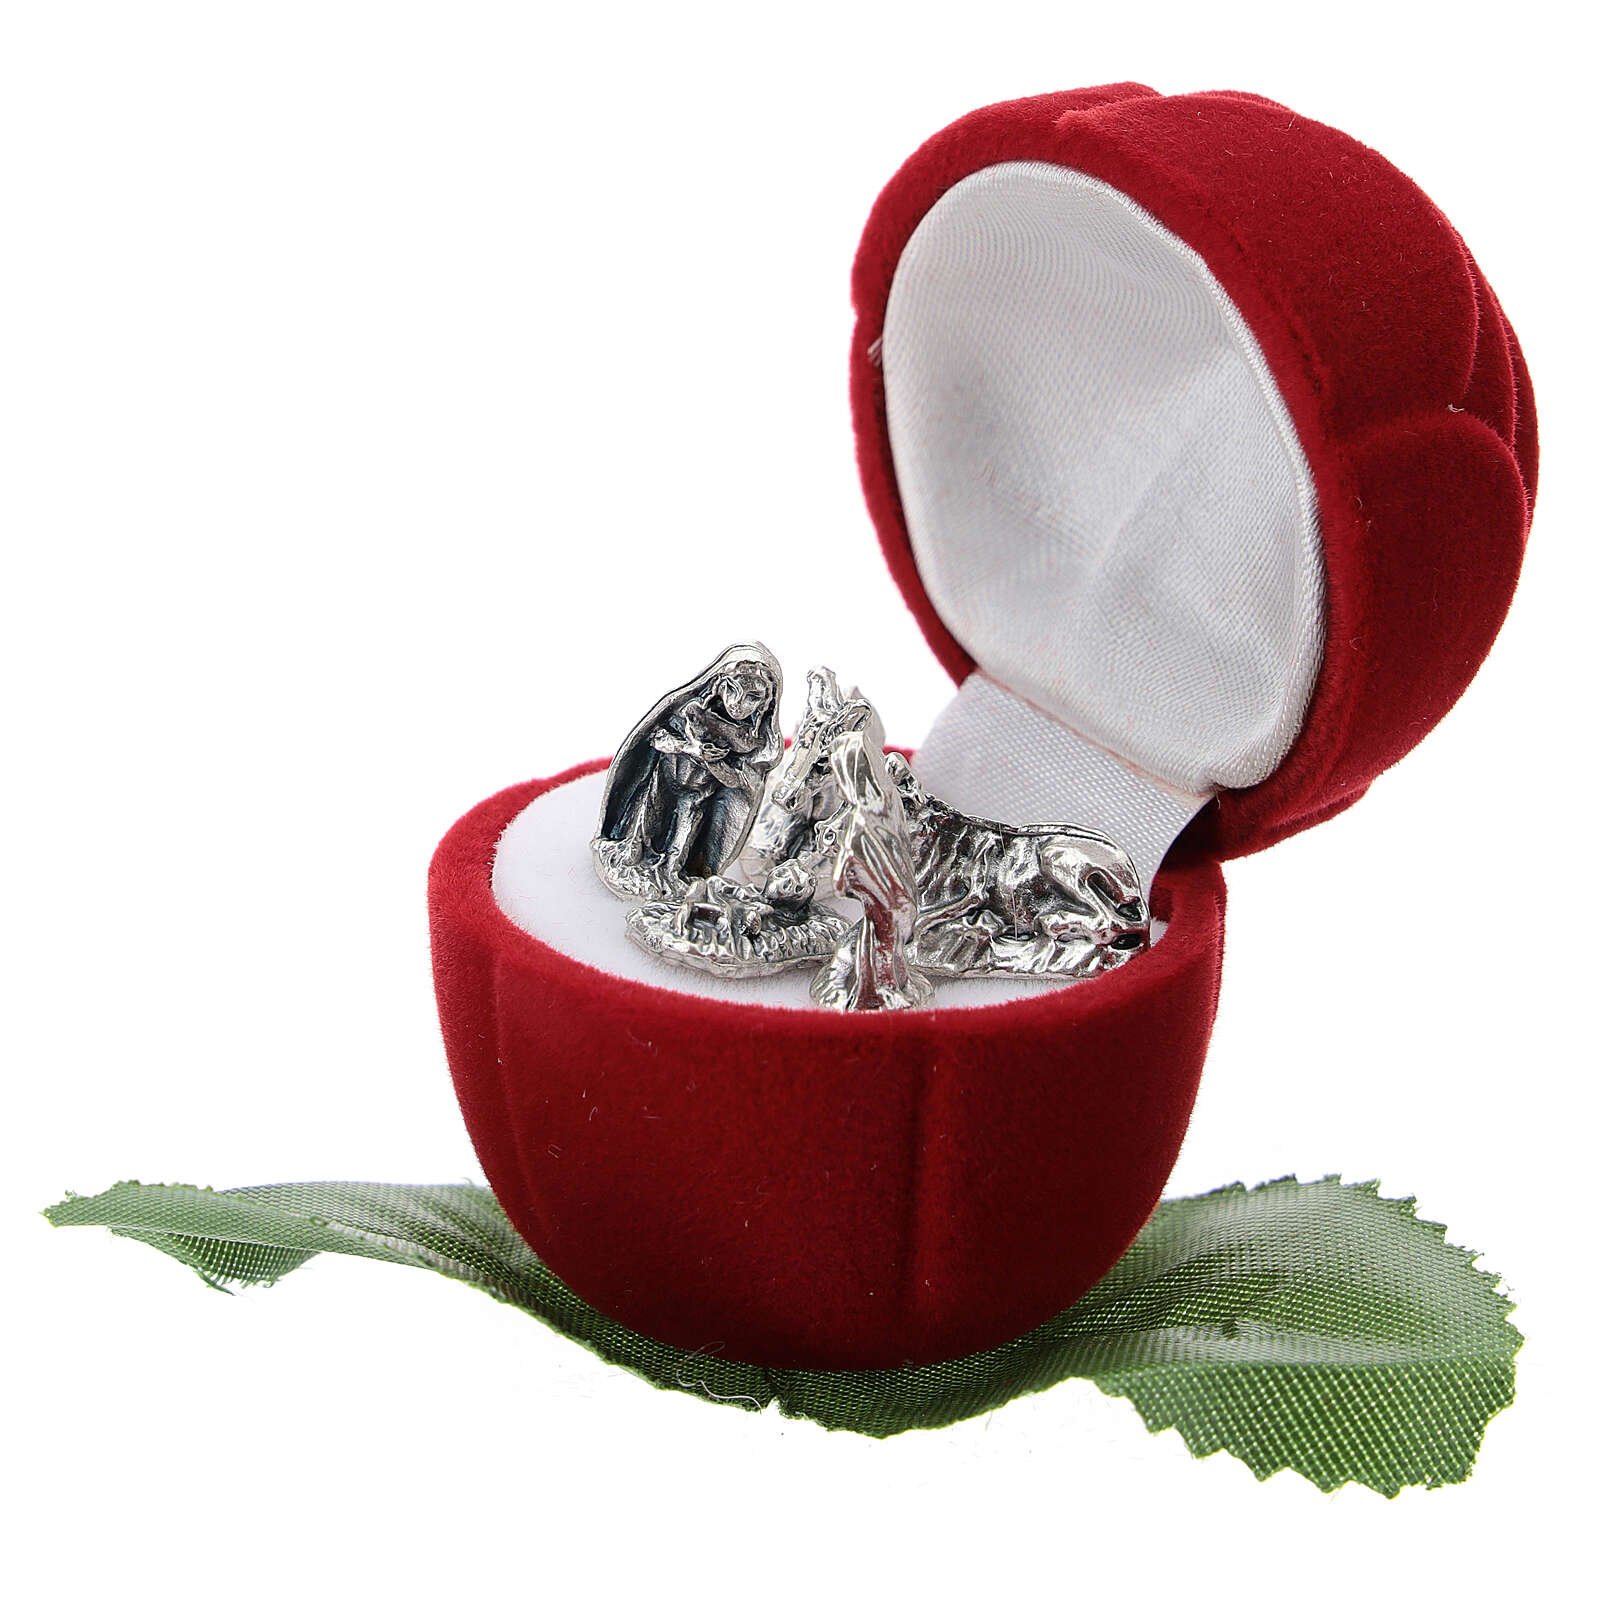 Small rose-shaper red velvet case with Nativity 3